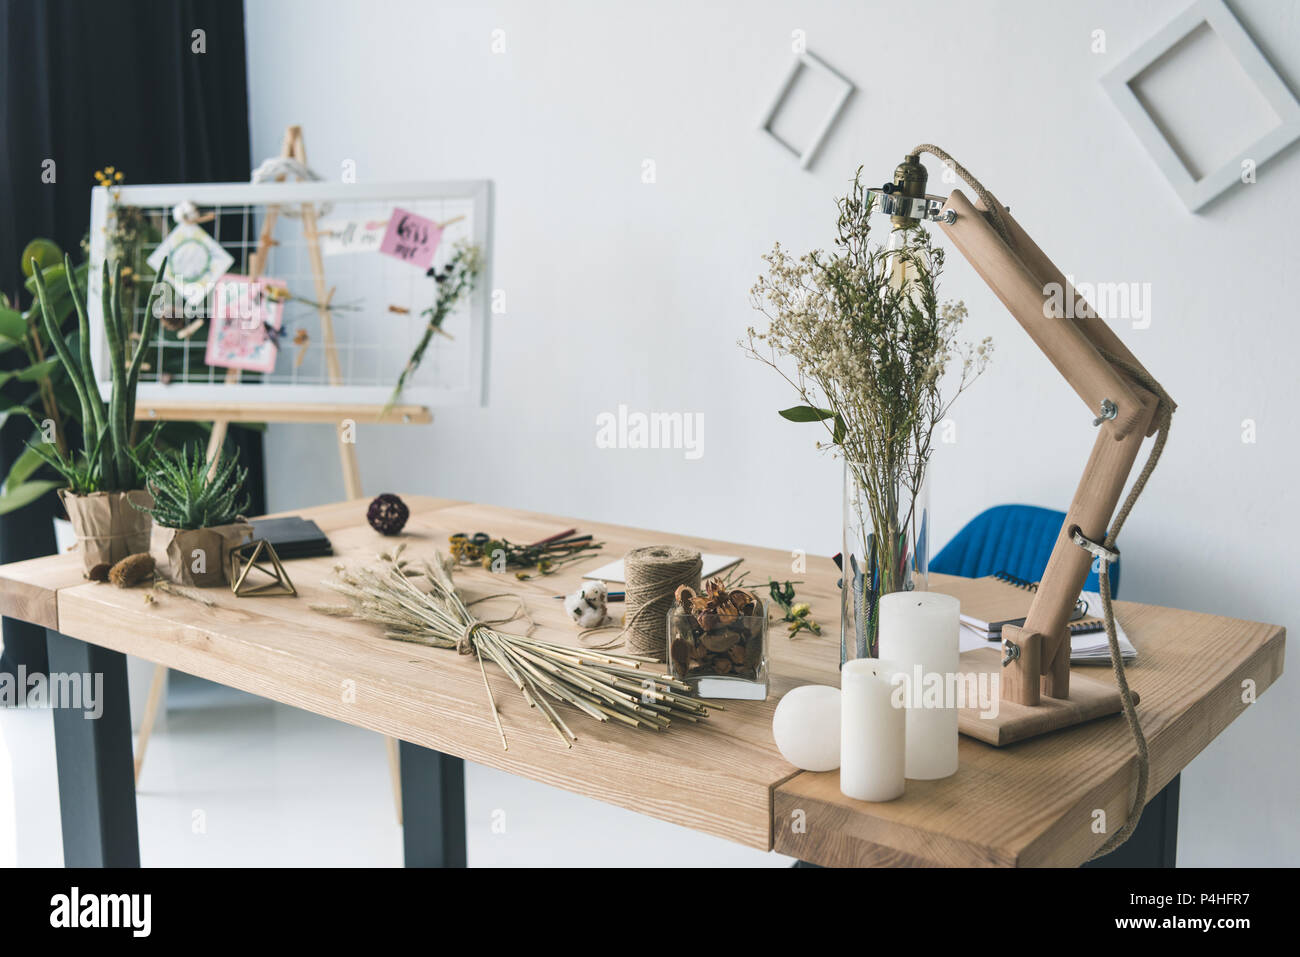 florist workplace with board, dry flowers and wheat ears in modern office - Stock Image